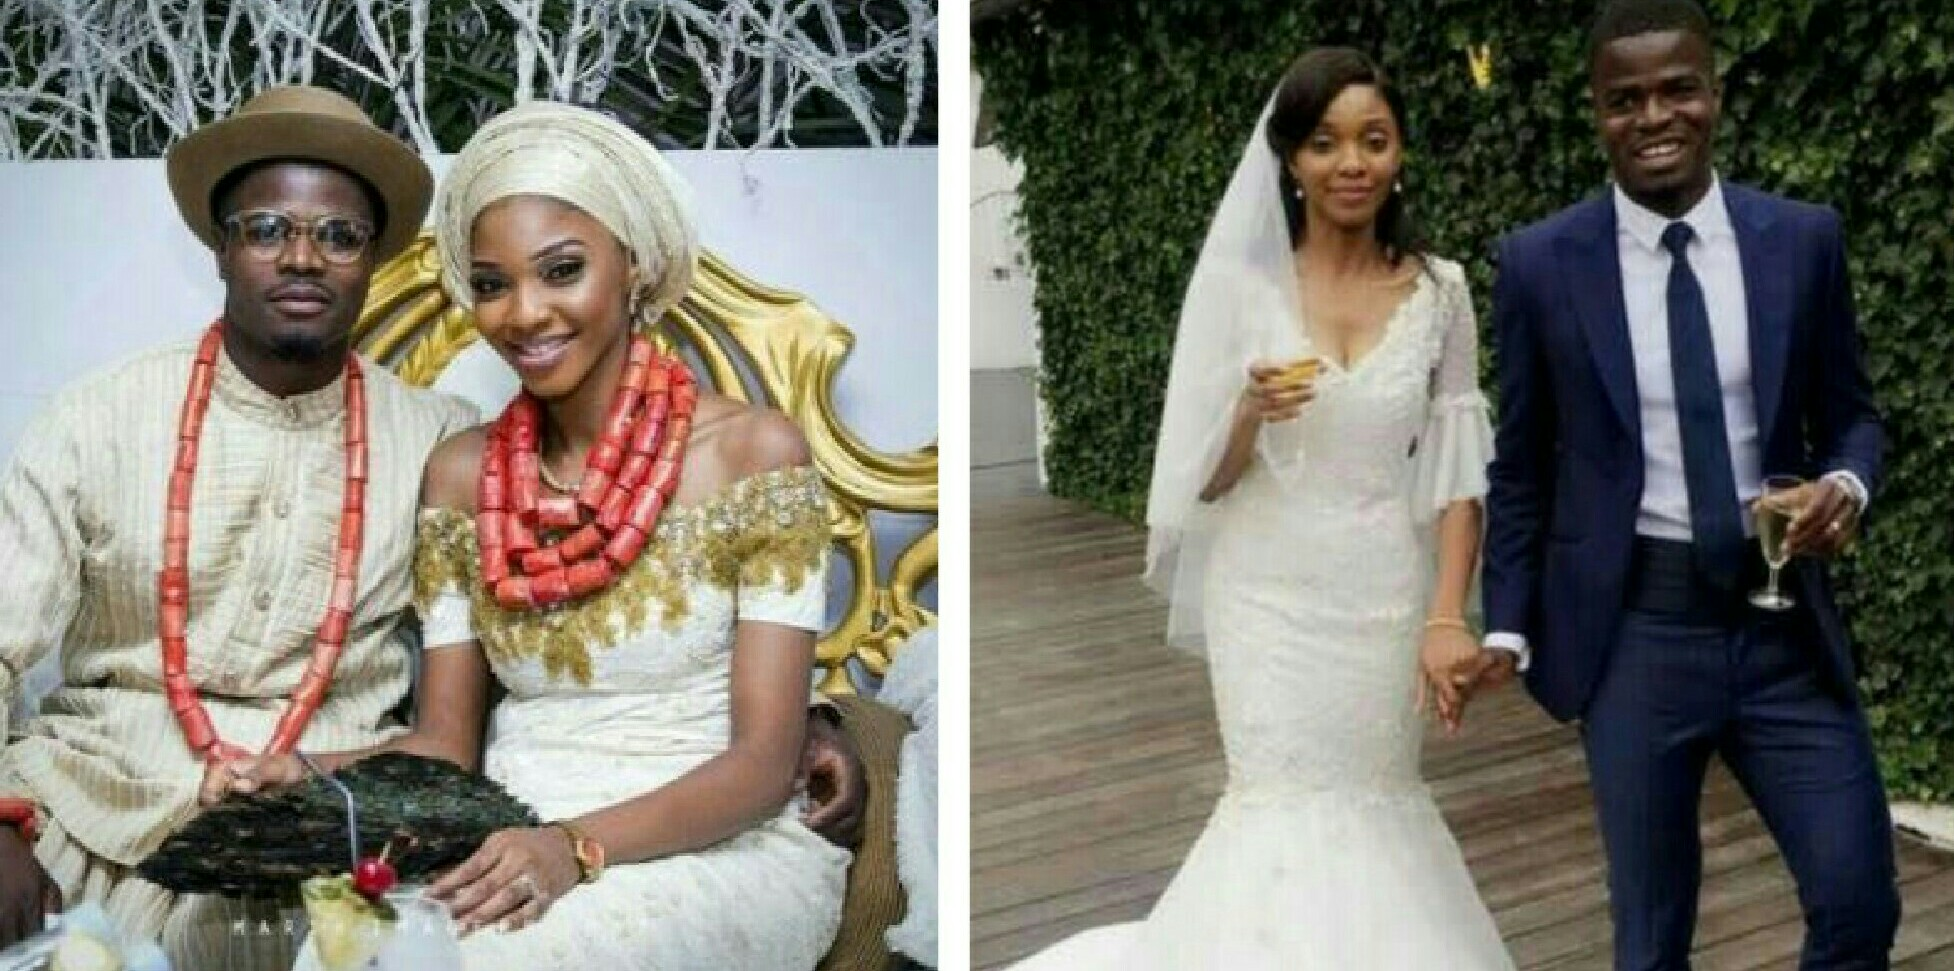 Echiejile: I Have Signed Up To Be More Responsible And Be Good Husband To My Wife